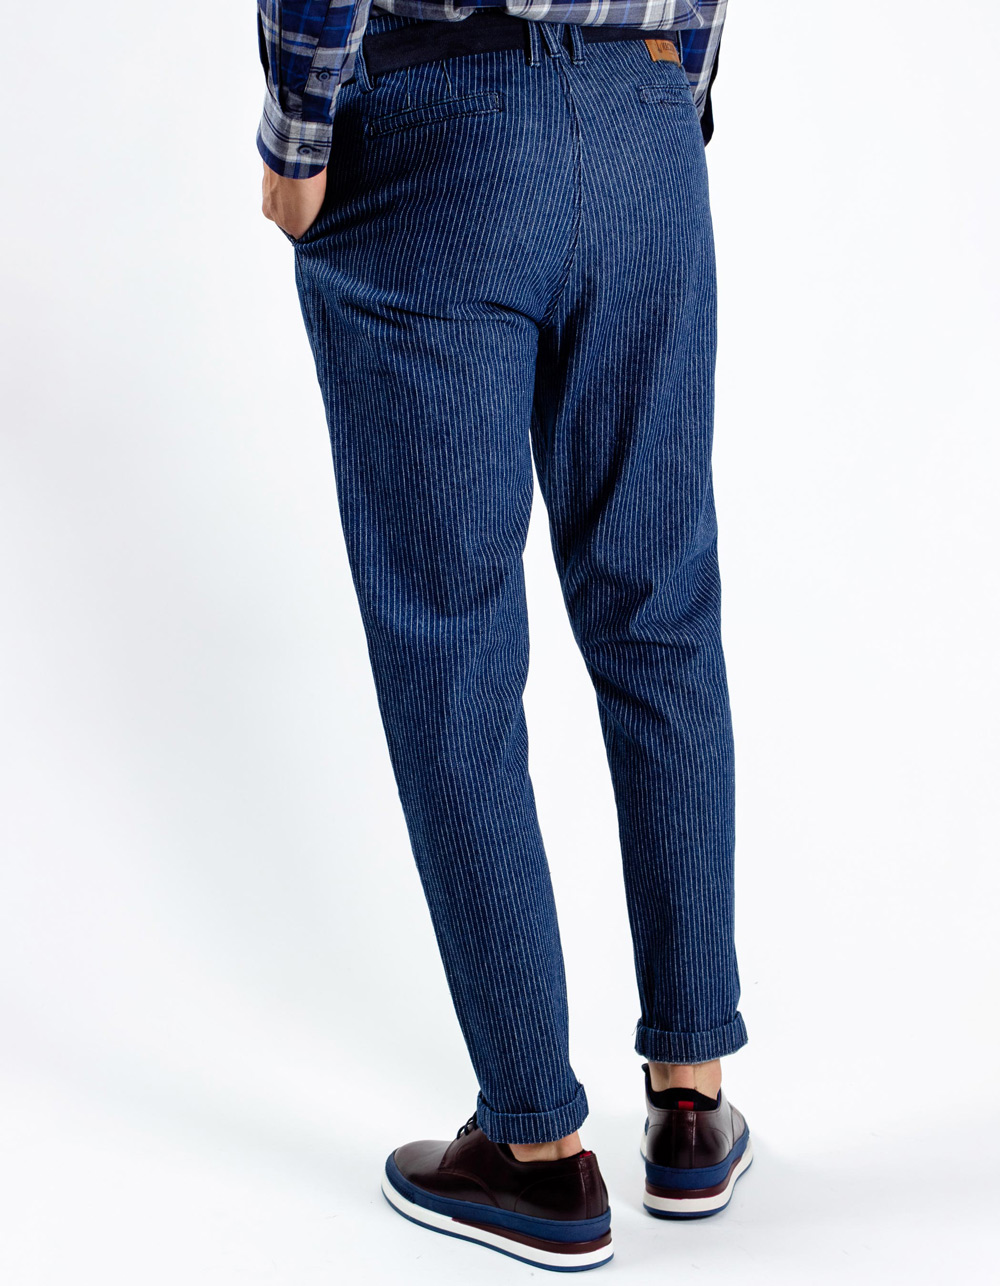 Navy blue stripes trousers - Backside